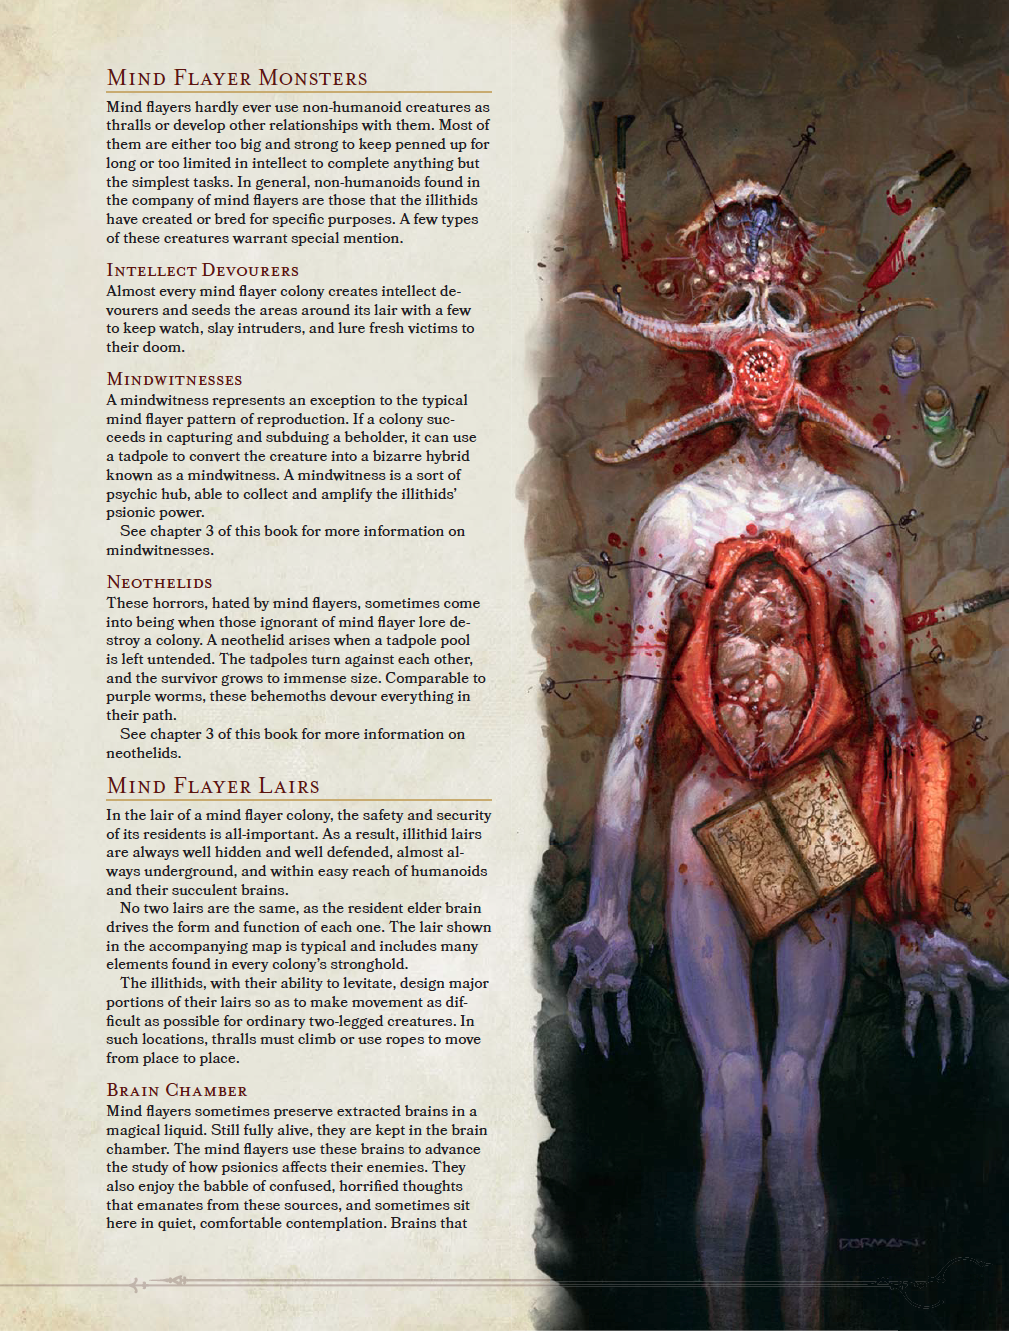 Anatomy of an Illithid